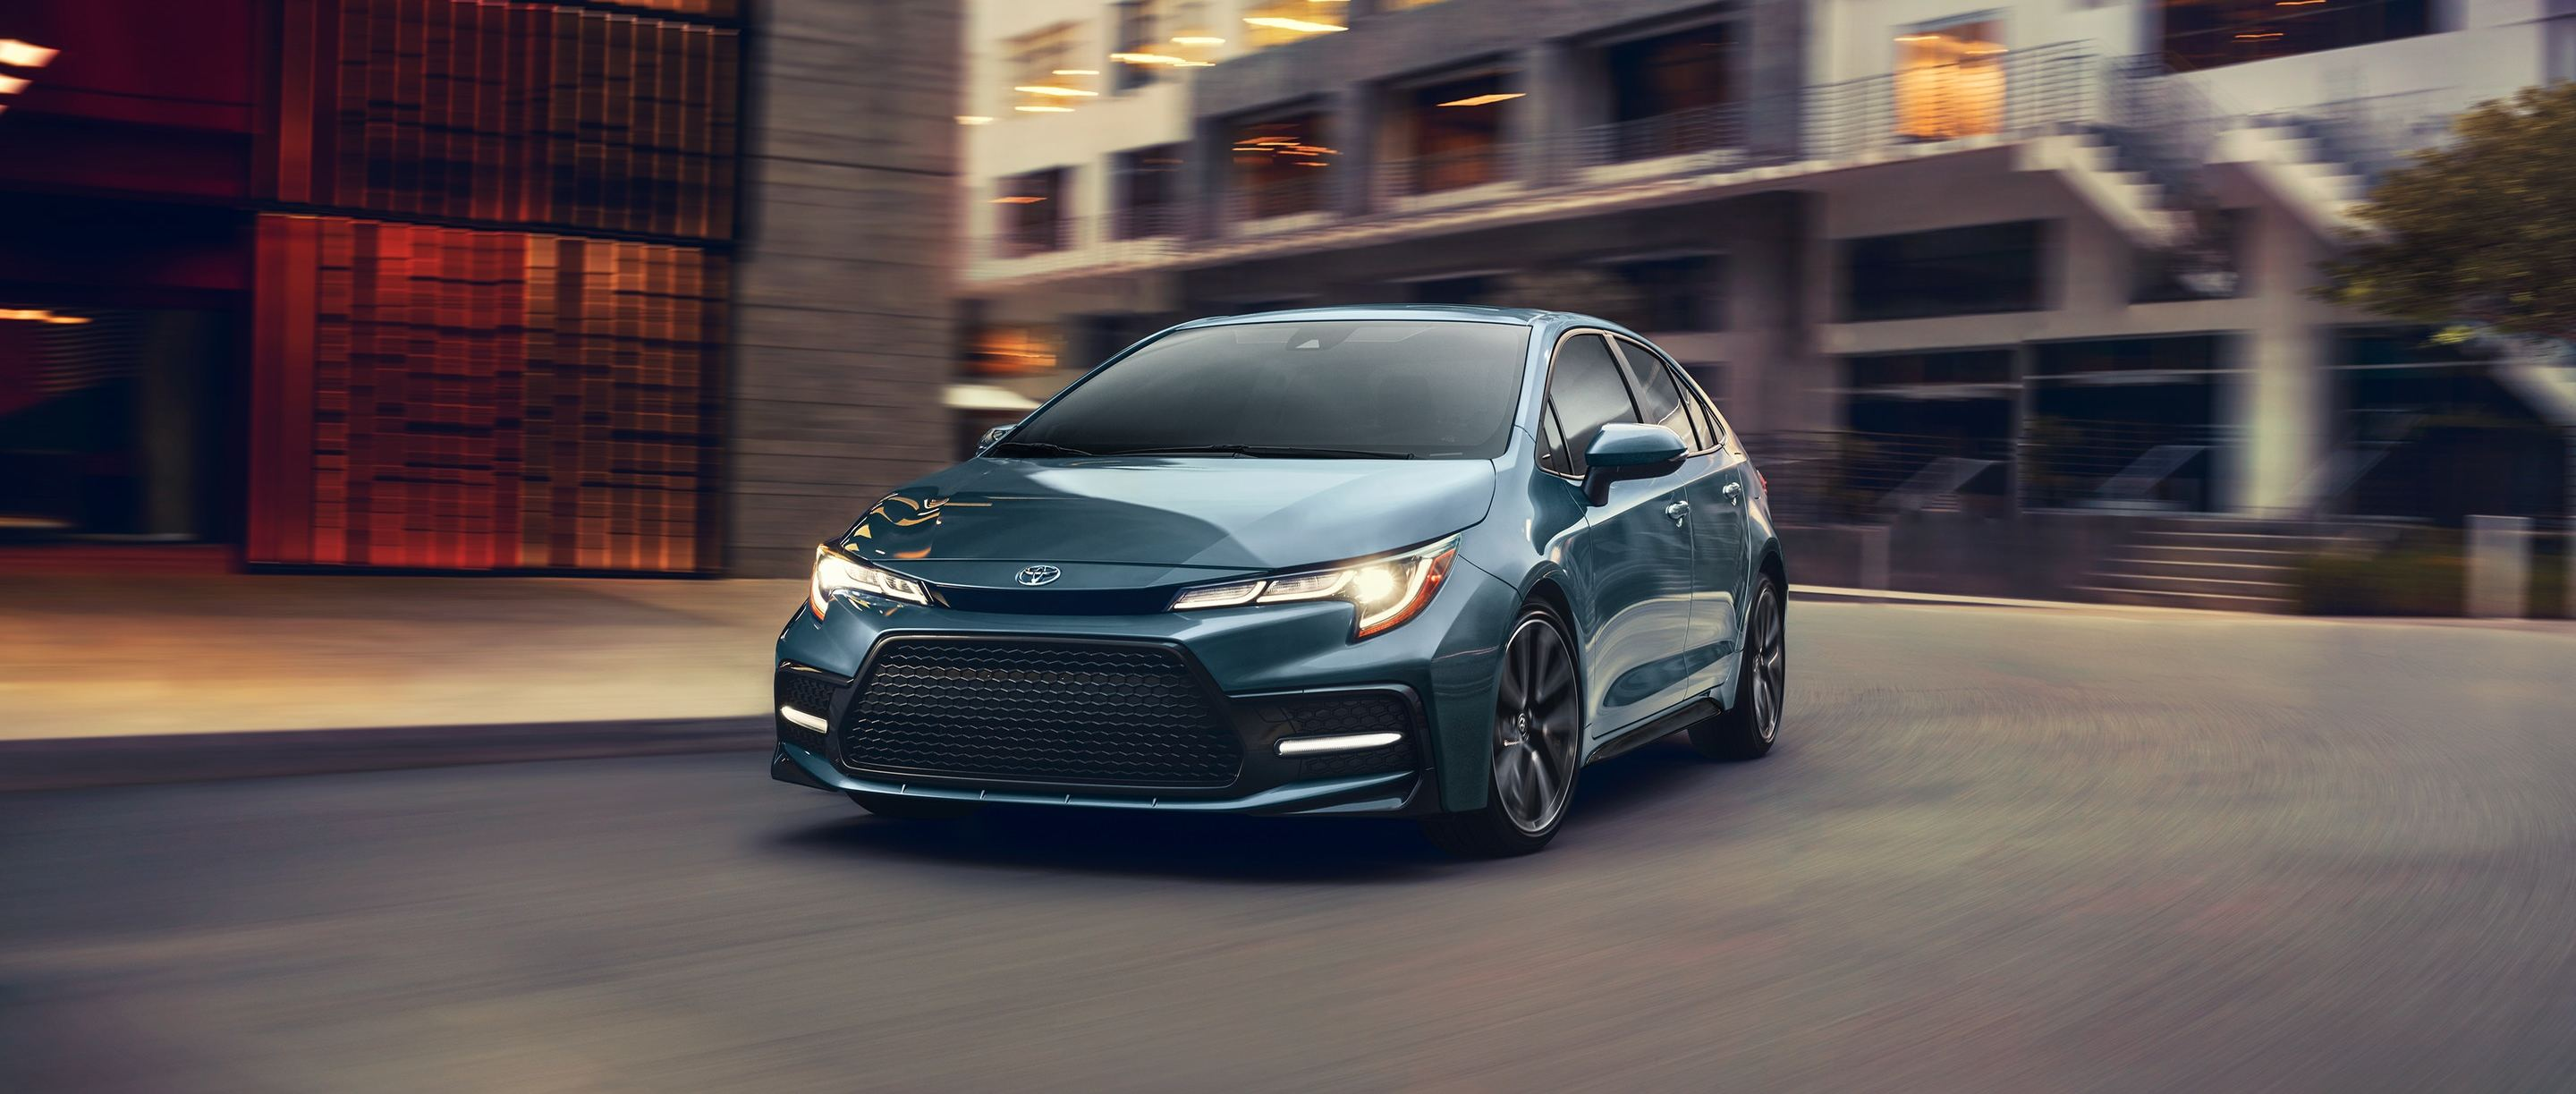 2020 Toyota Corolla for Sale near Pittsburgh, PA